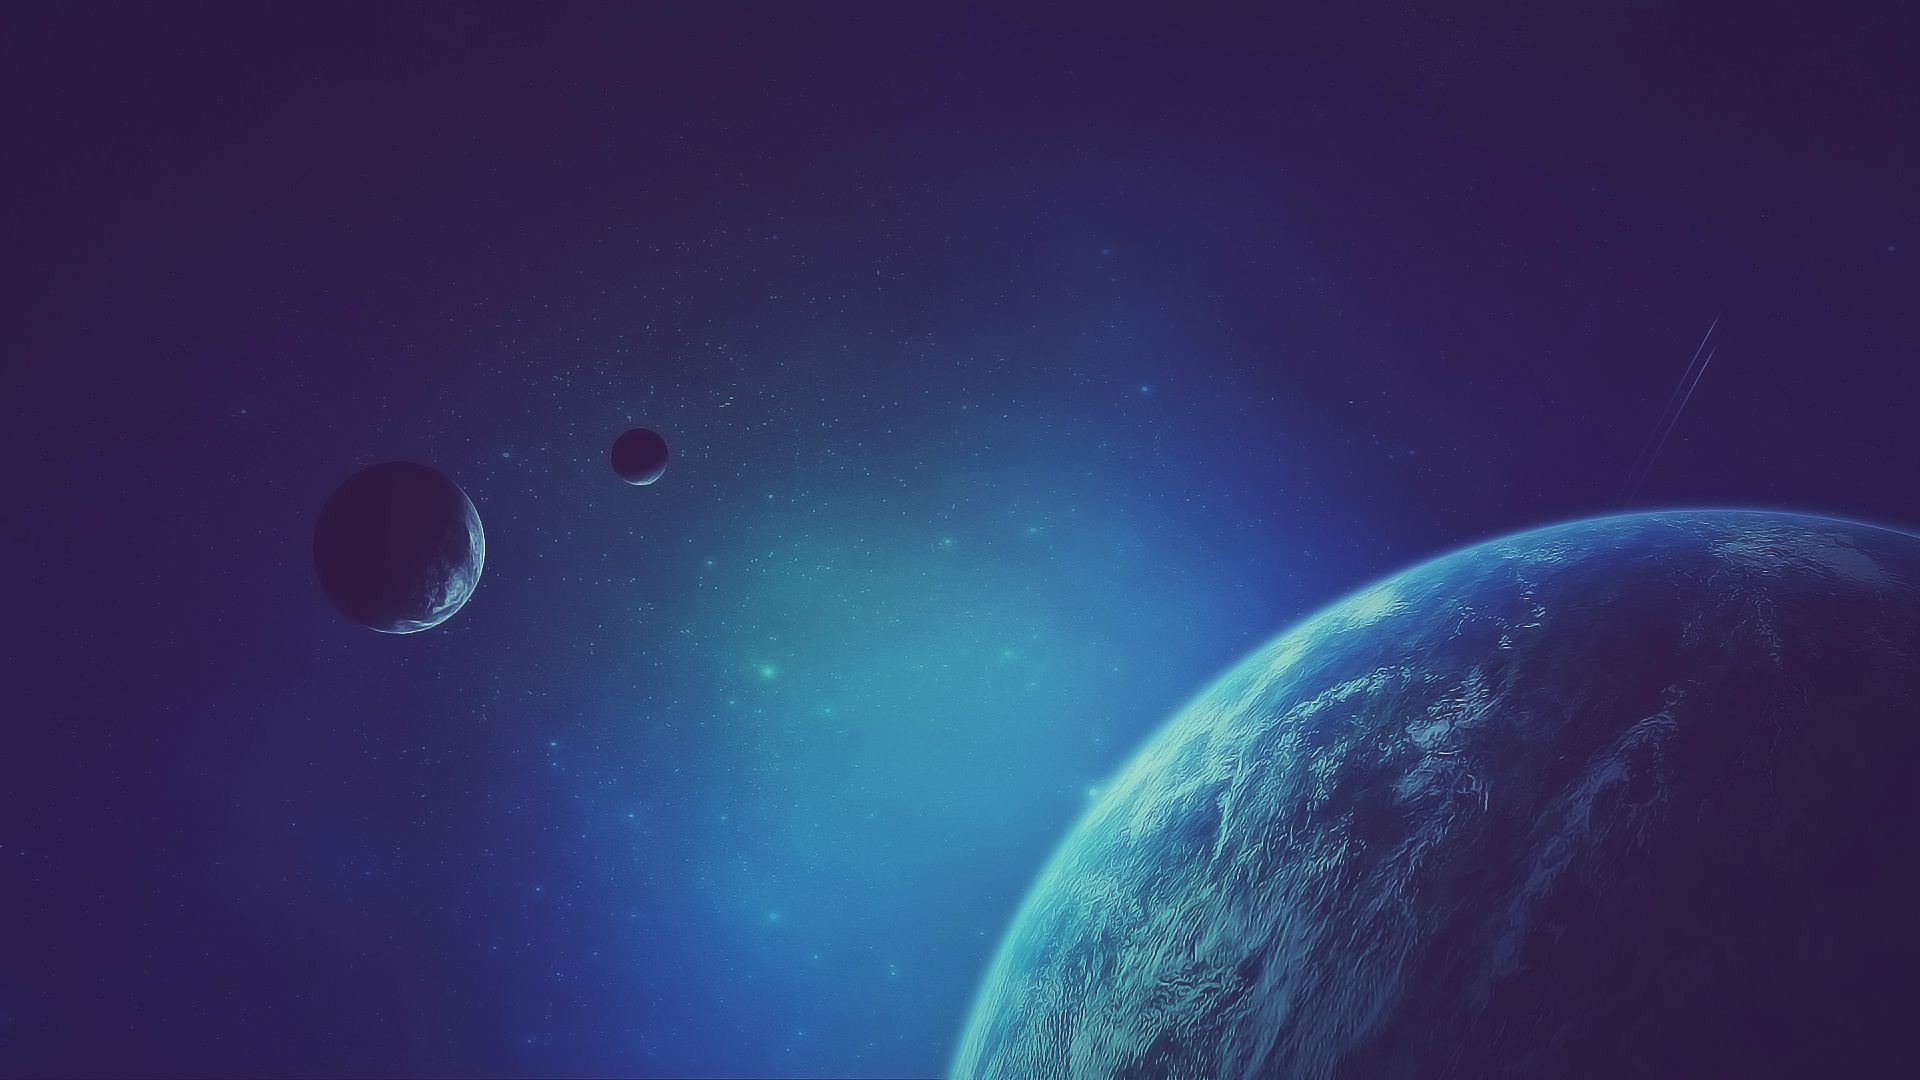 General 1920x1080 artwork fantasy art planet space stars galaxy blue space art digital art